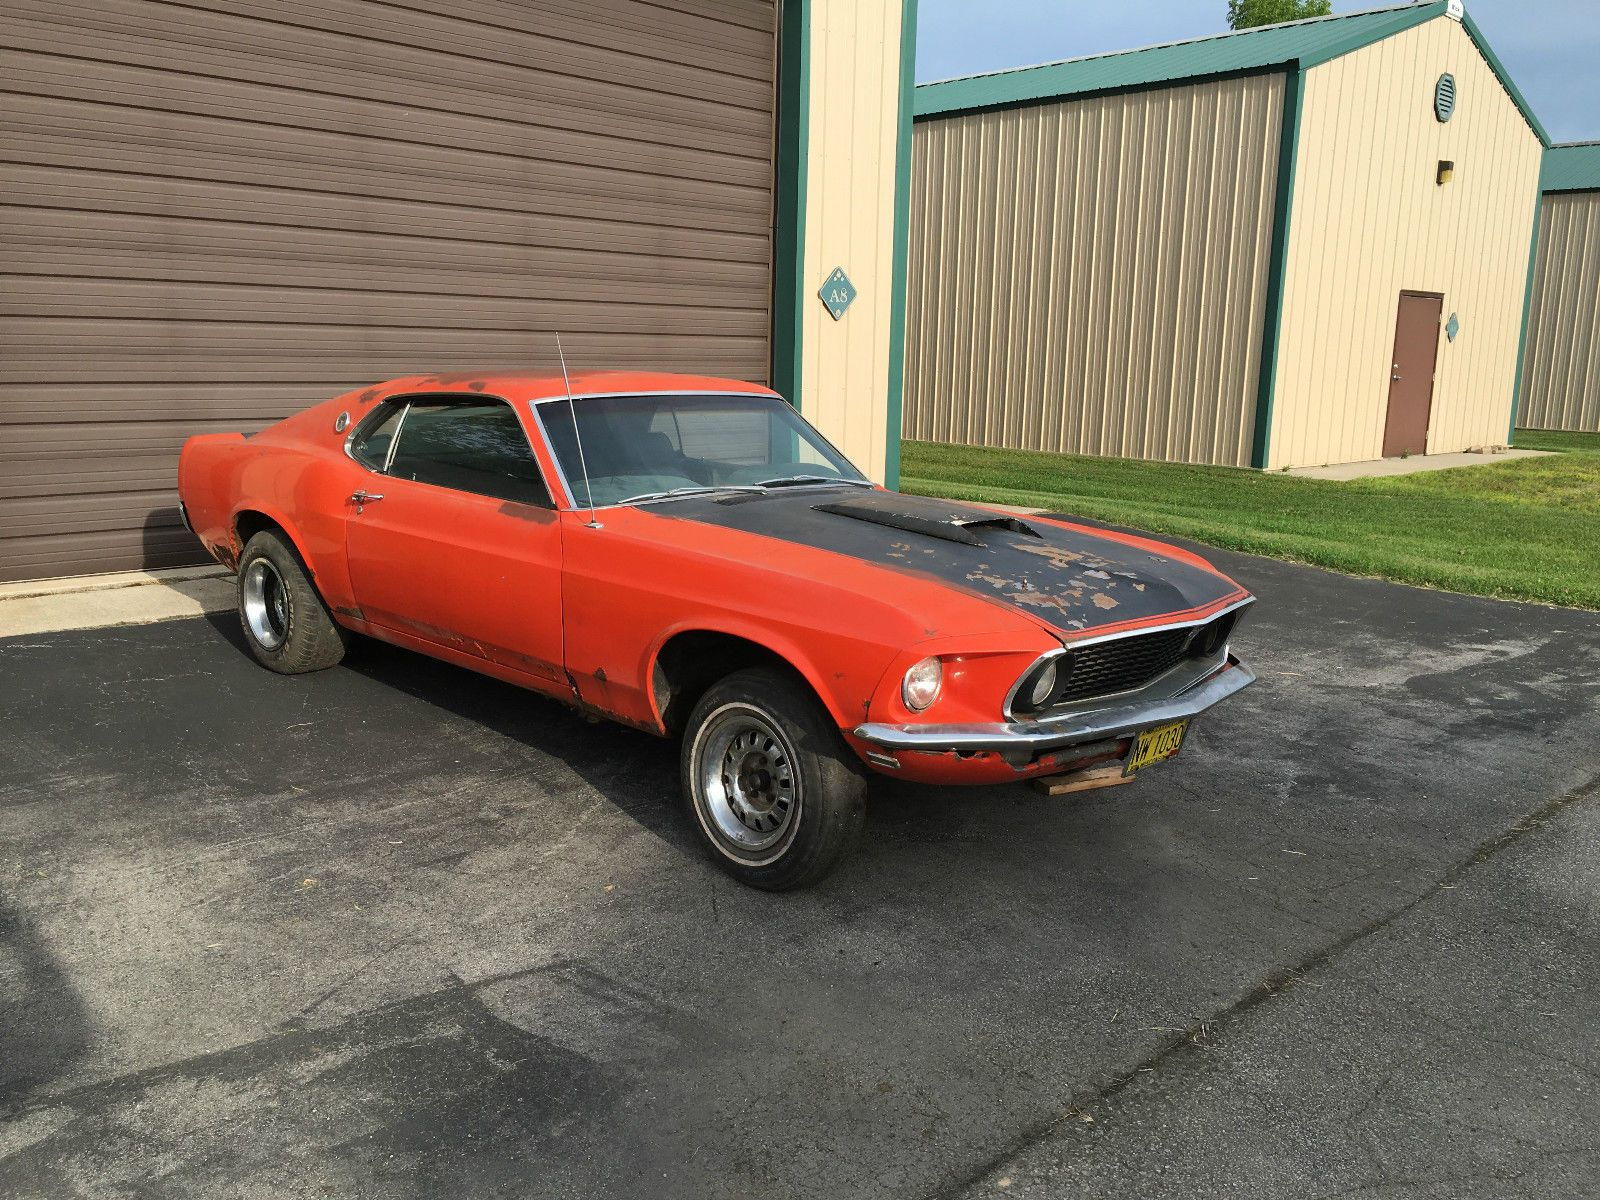 1969 Ford Mustang Fastback Sport roof project car | Project cars ...